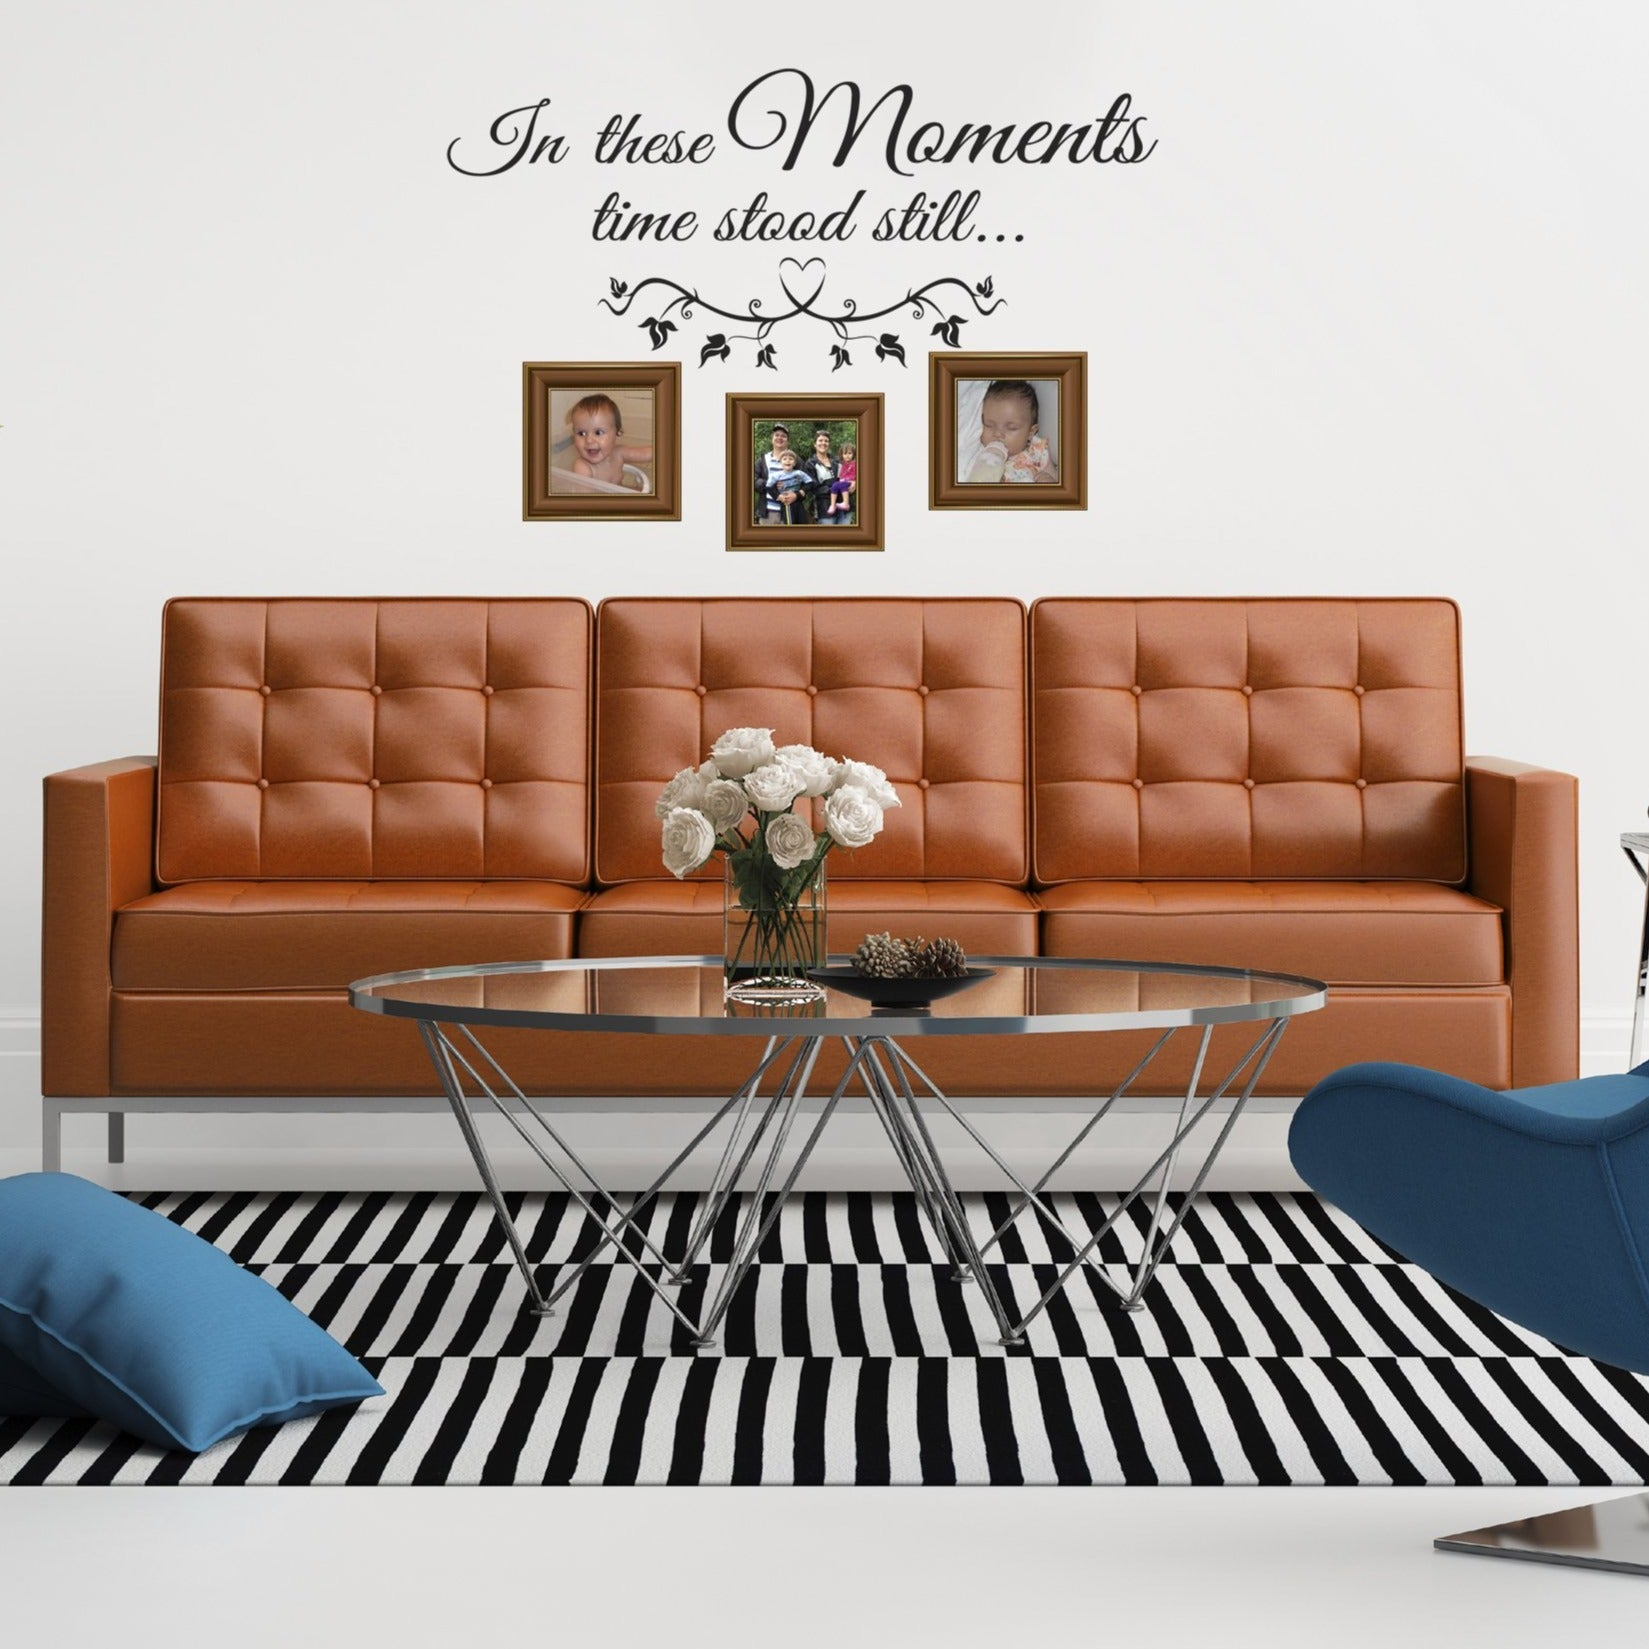 In these moments vinyl wall poetry